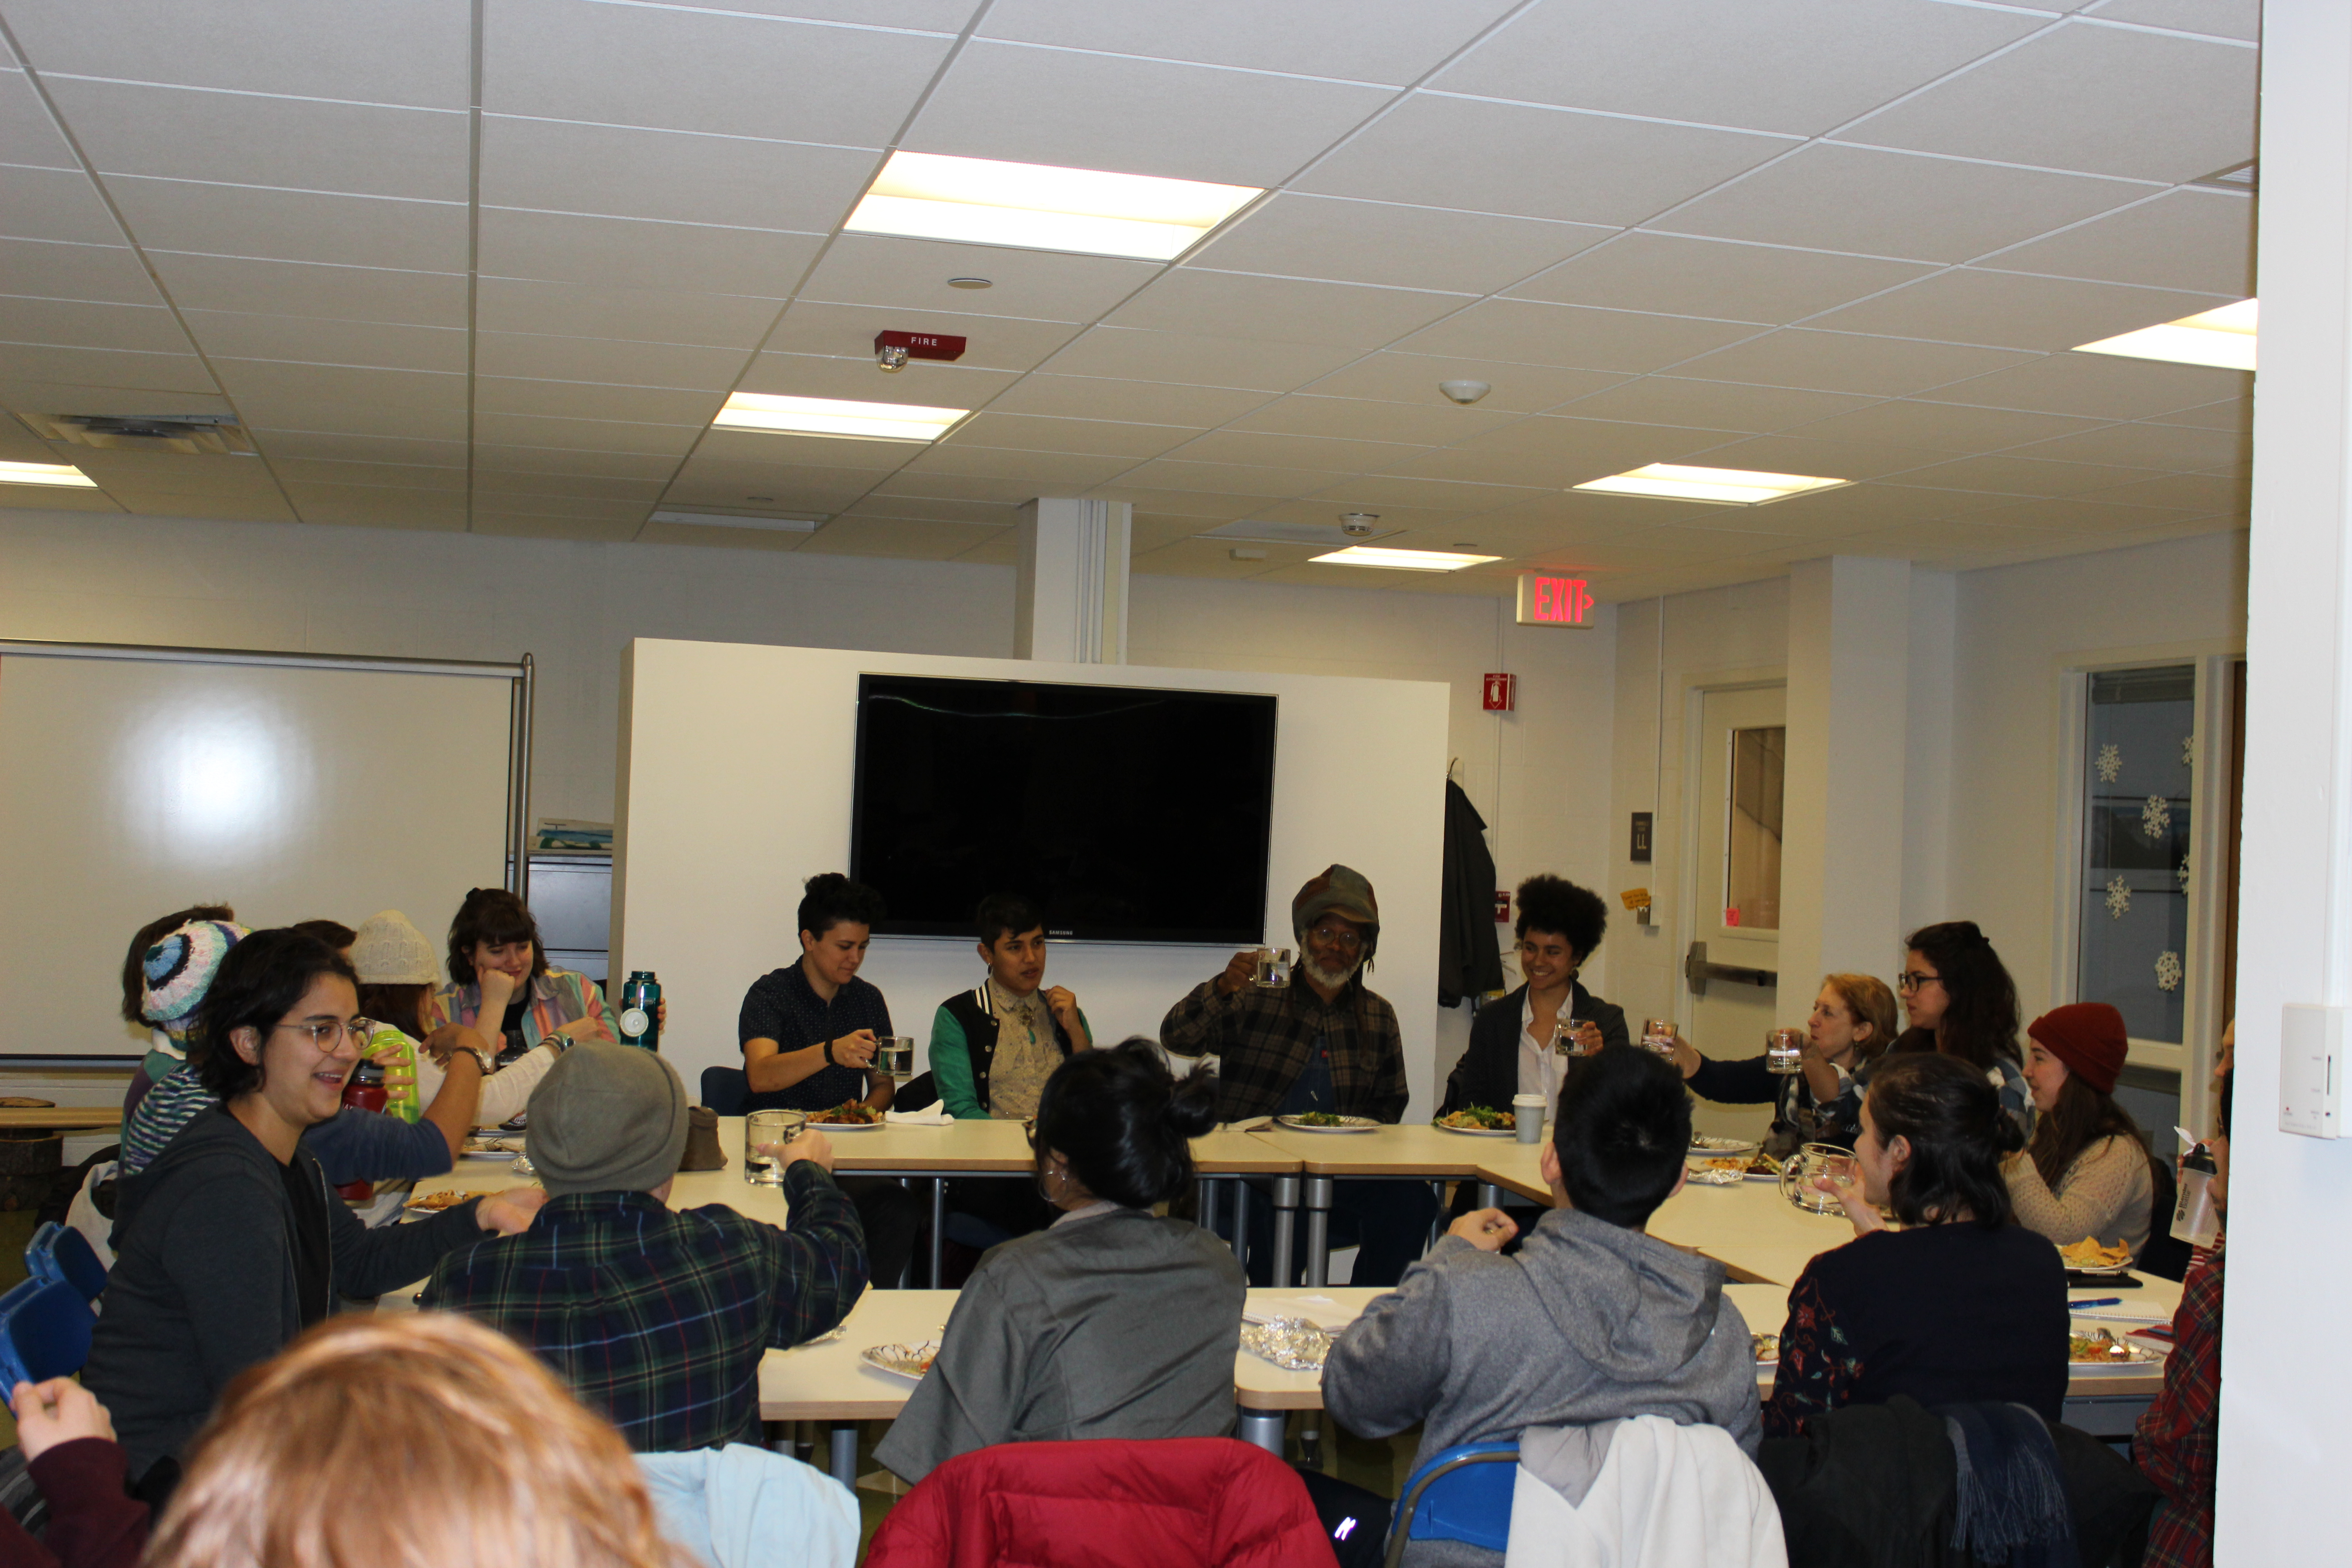 Picture of the event with Maurice Small and students around a table